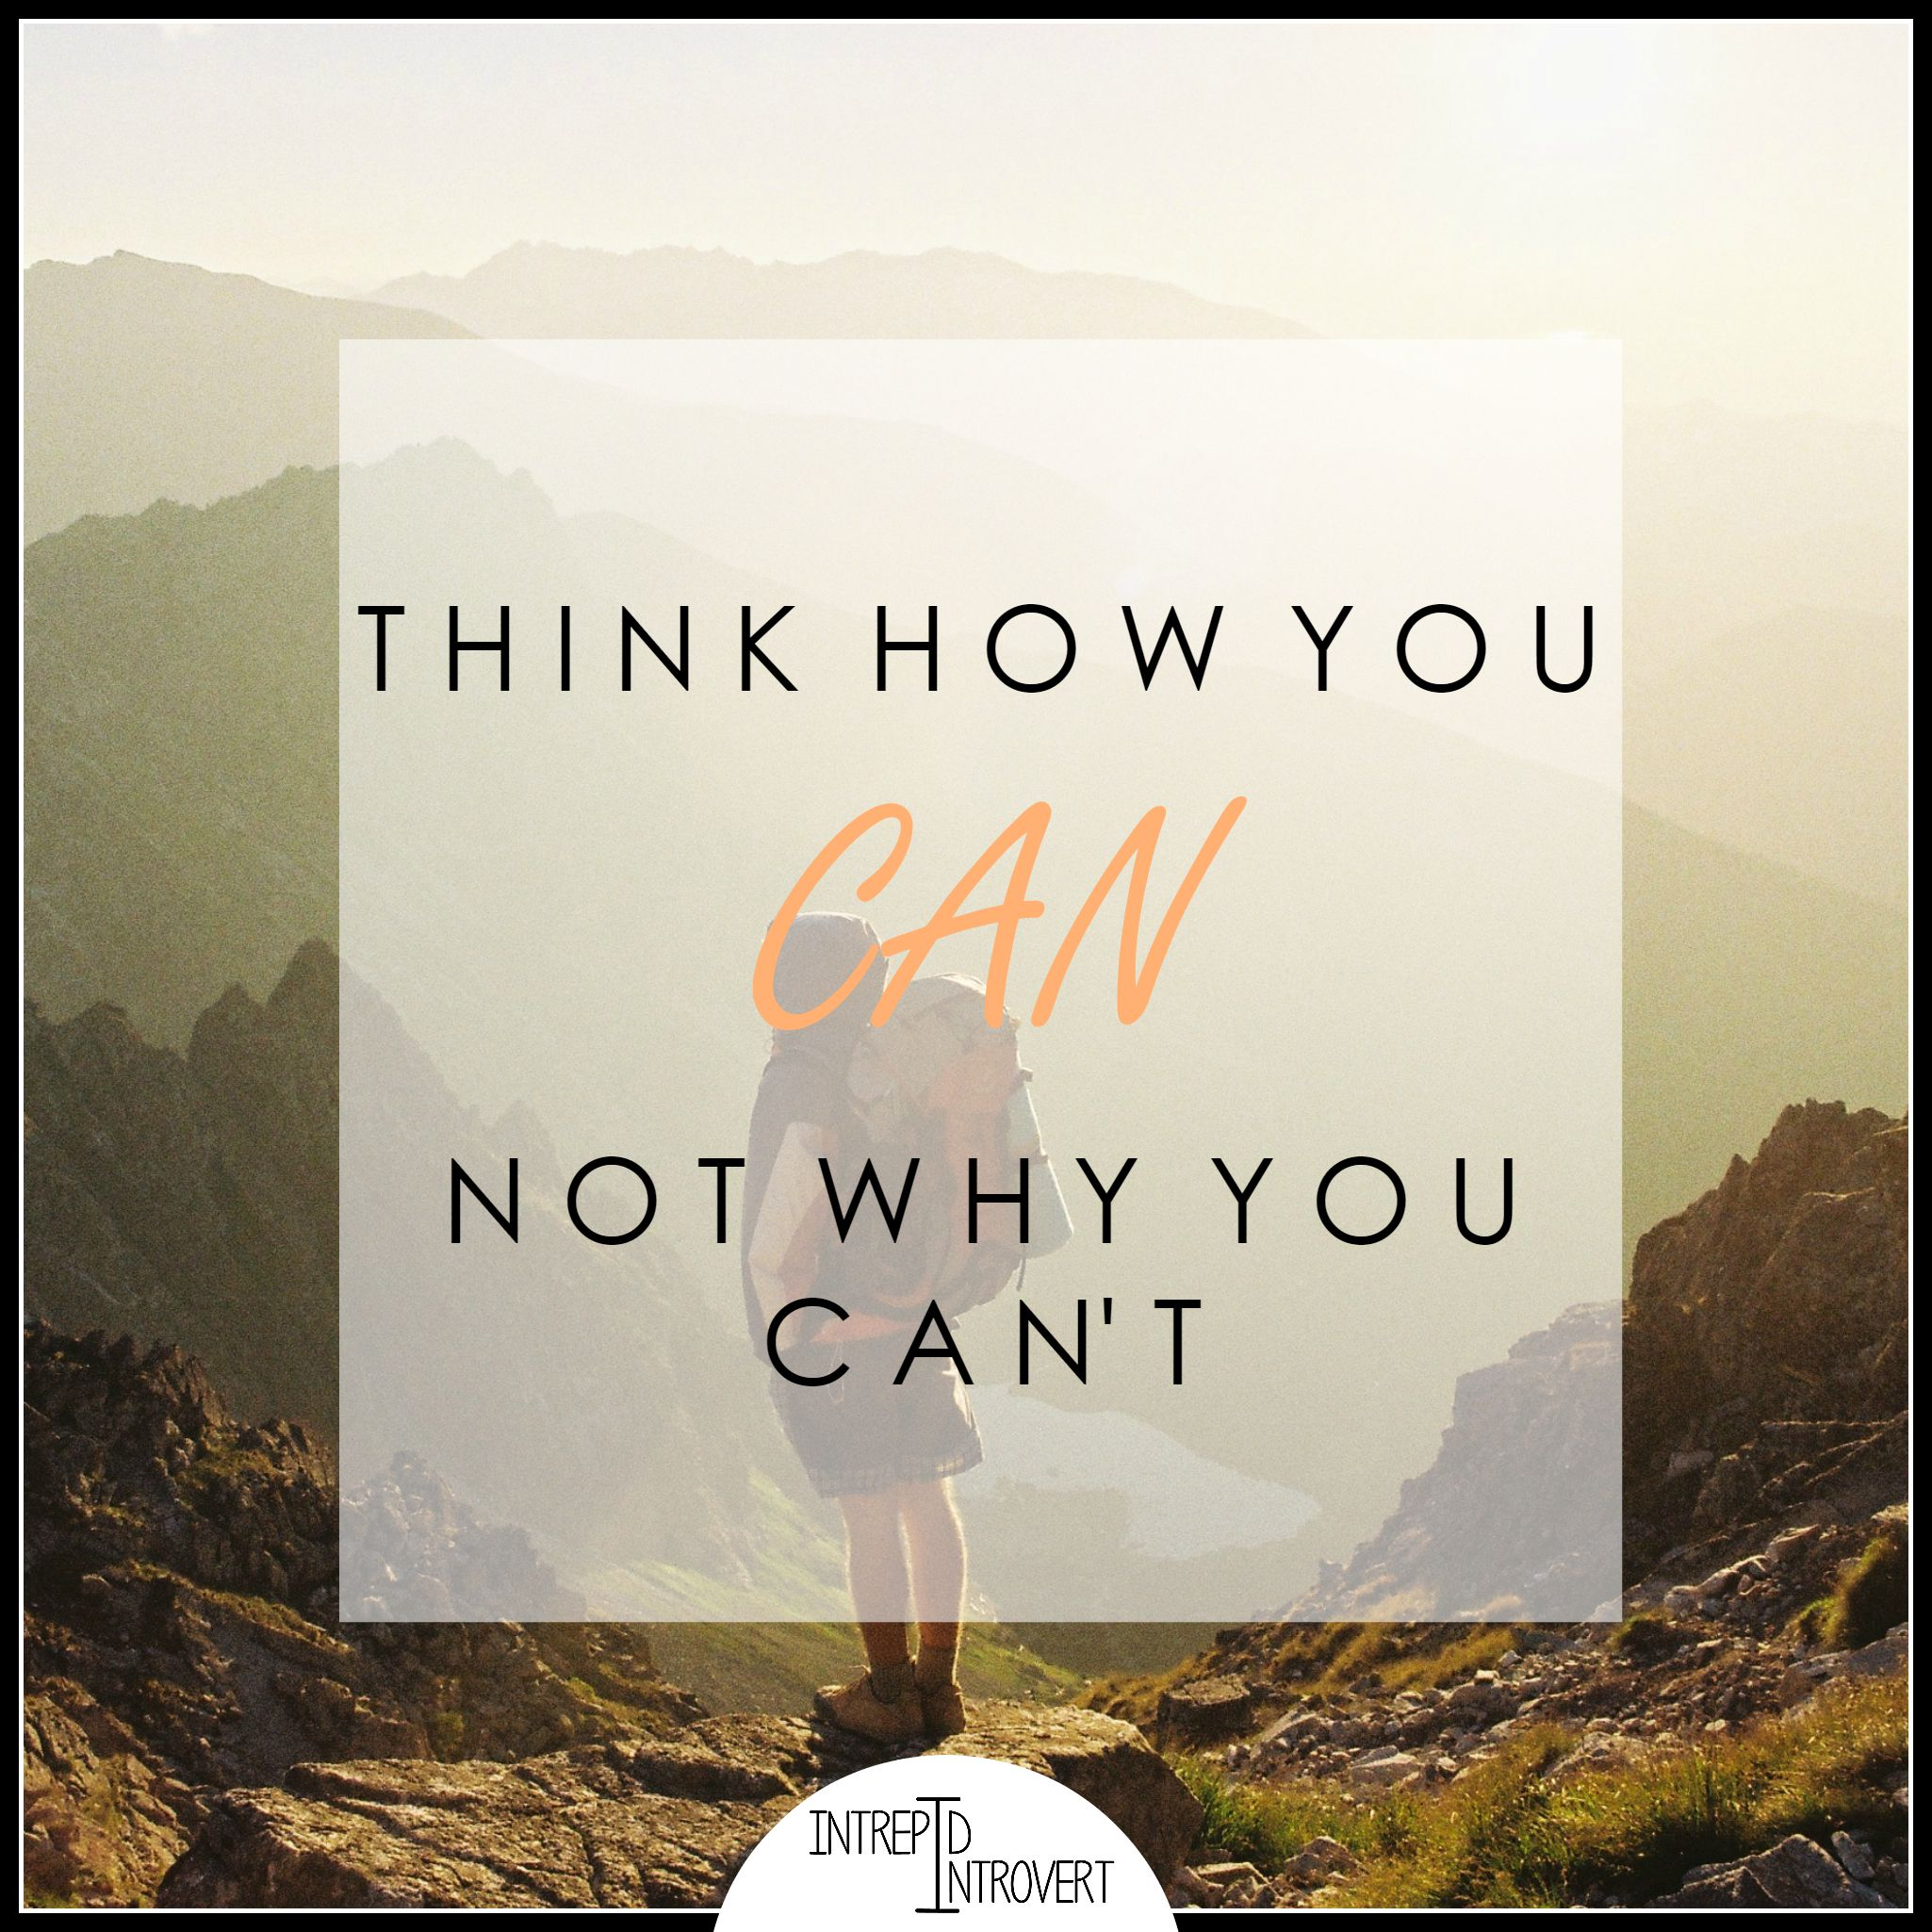 Think how you can